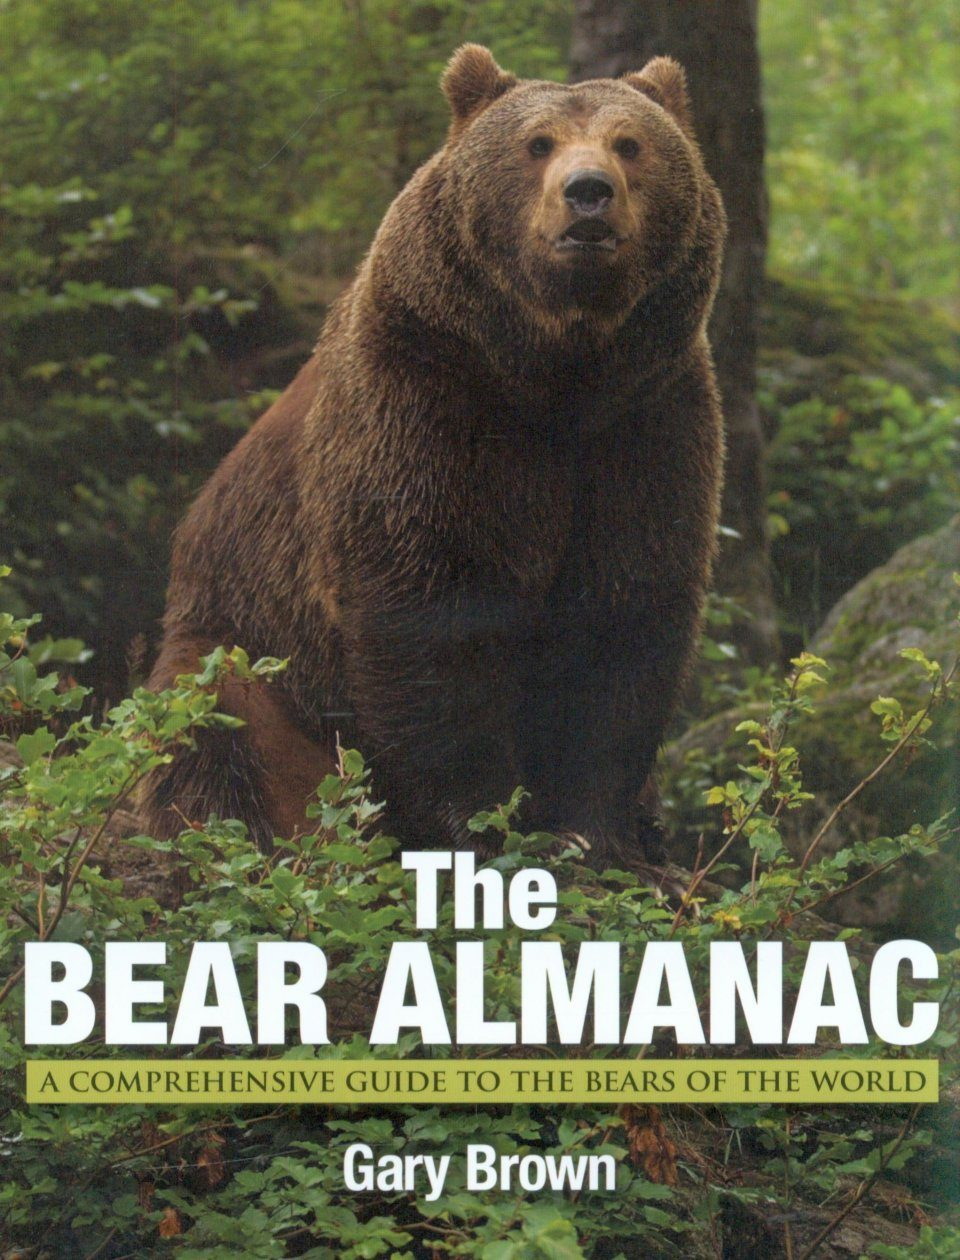 The Bear Almanac